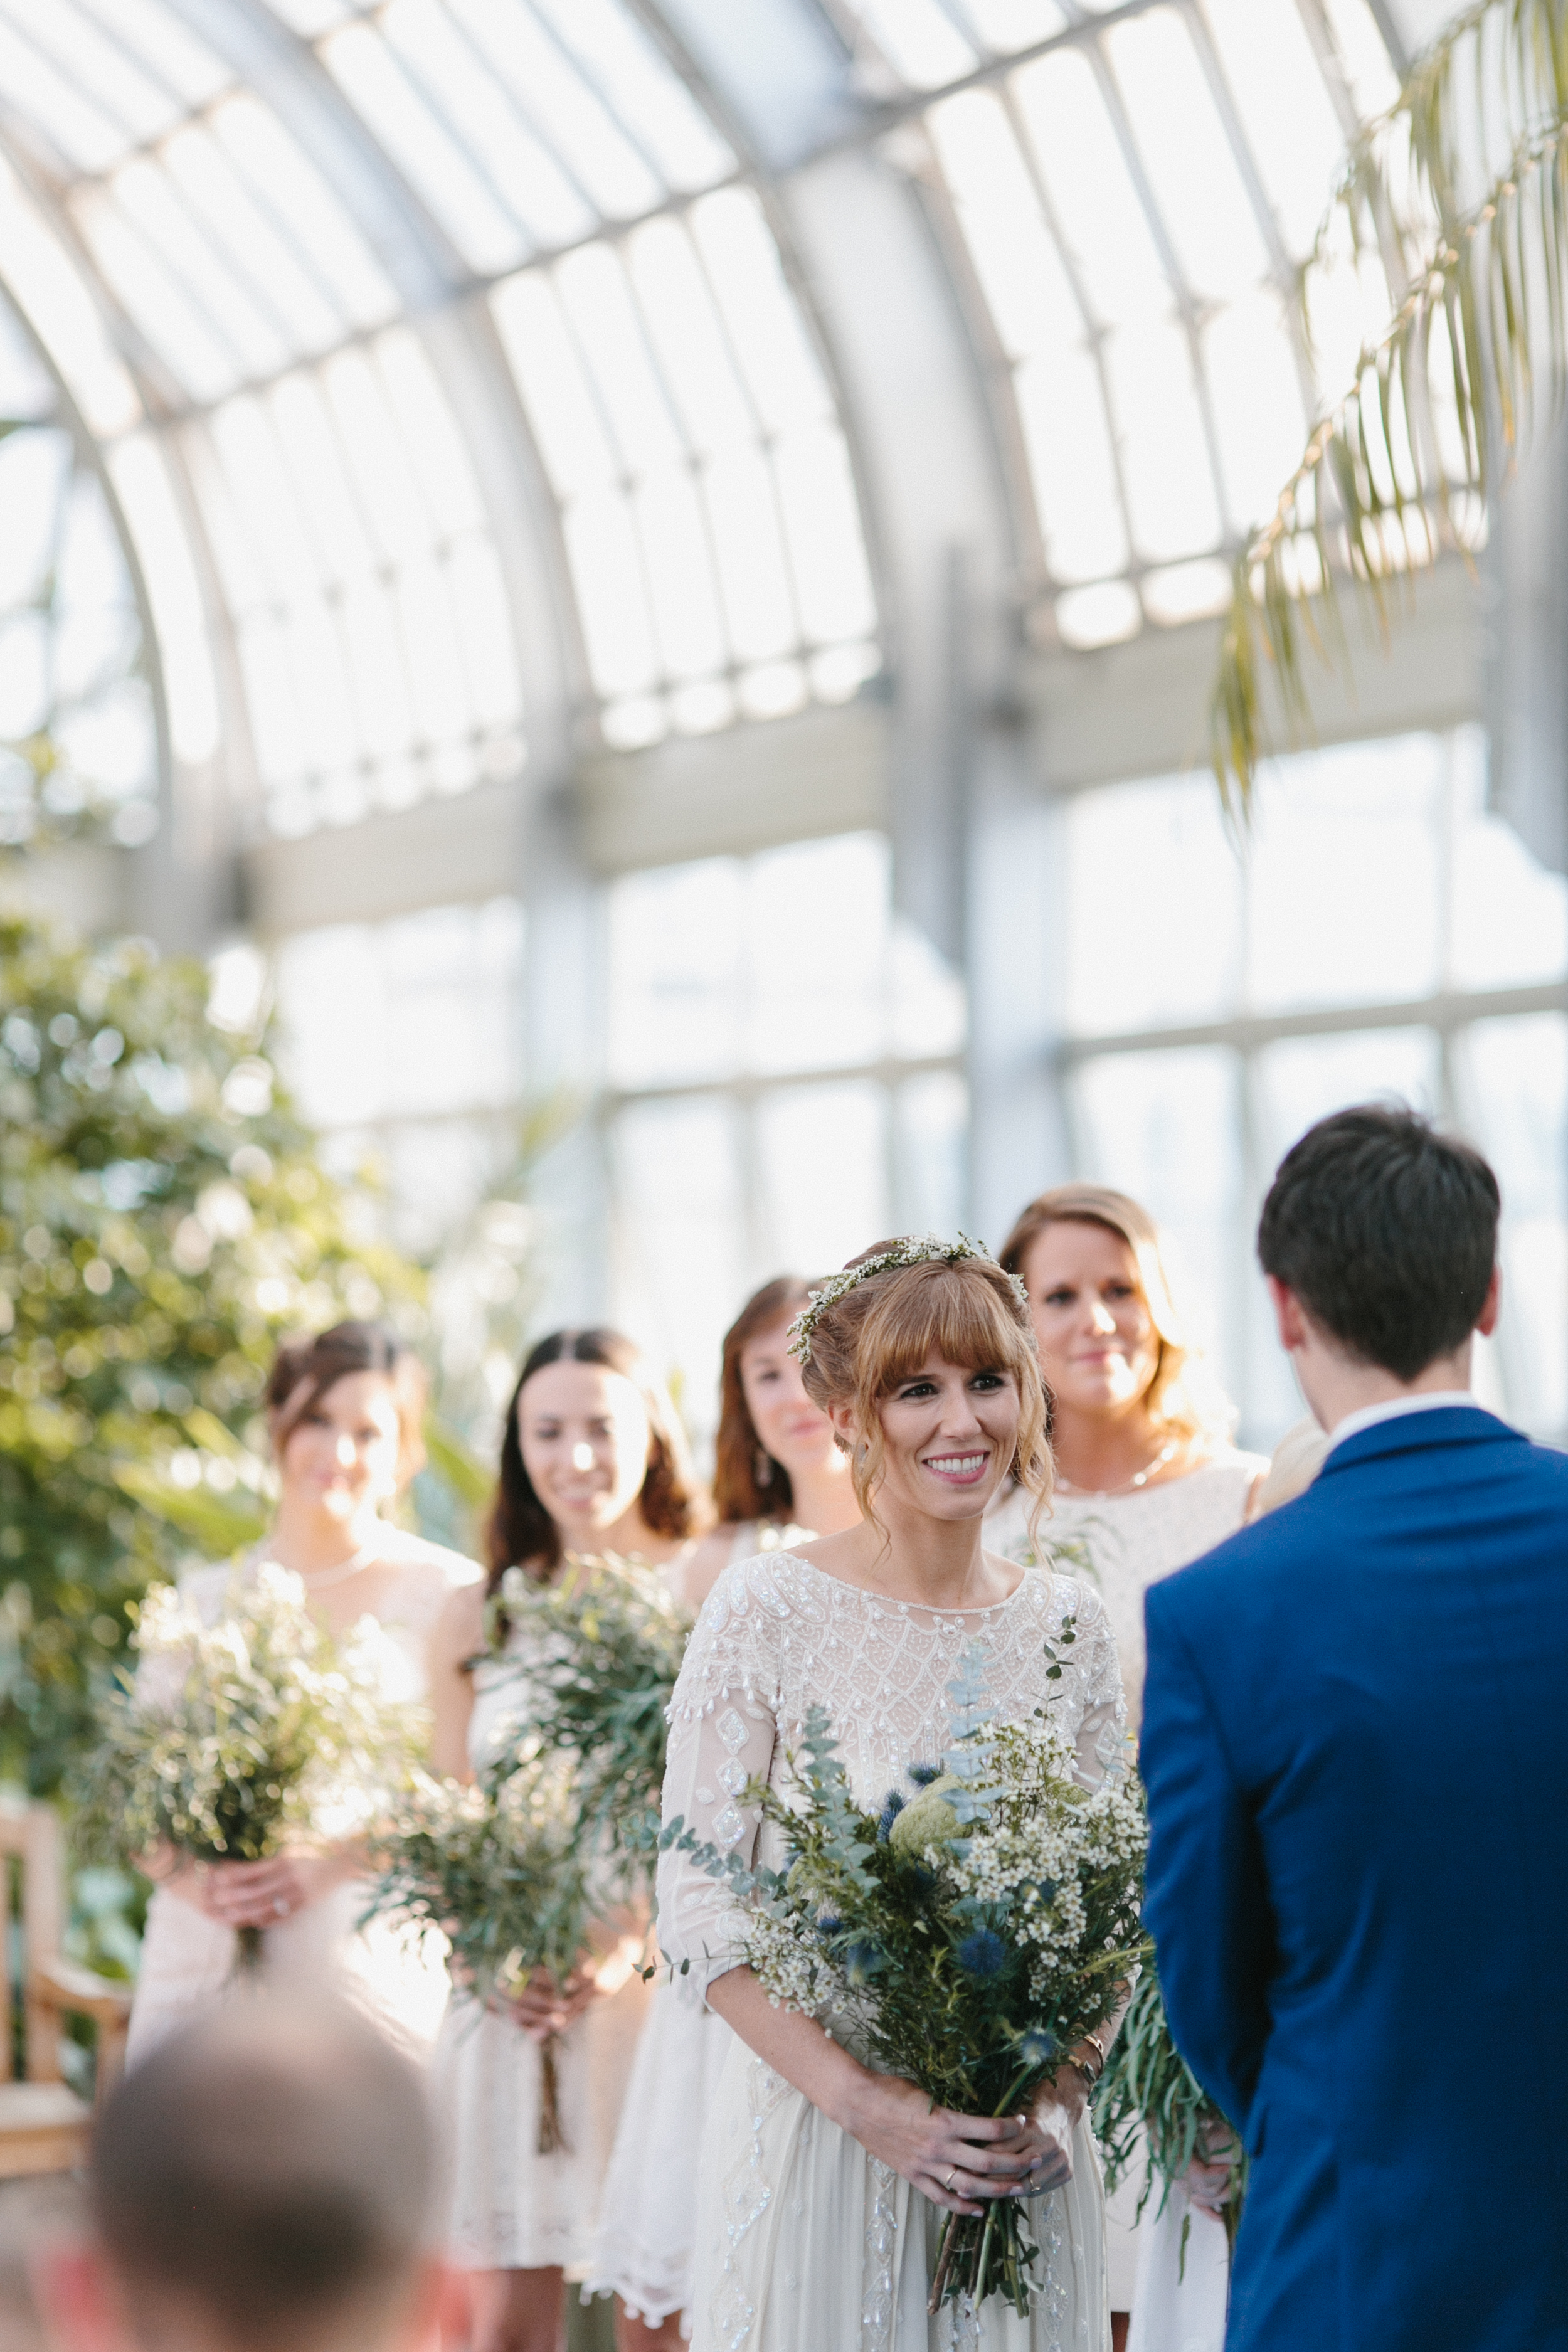 Chicago Wedding Garfield Park Conservatory Mae Stier Wedding Photographer Lifestyle Photography Midwest California-058.jpg